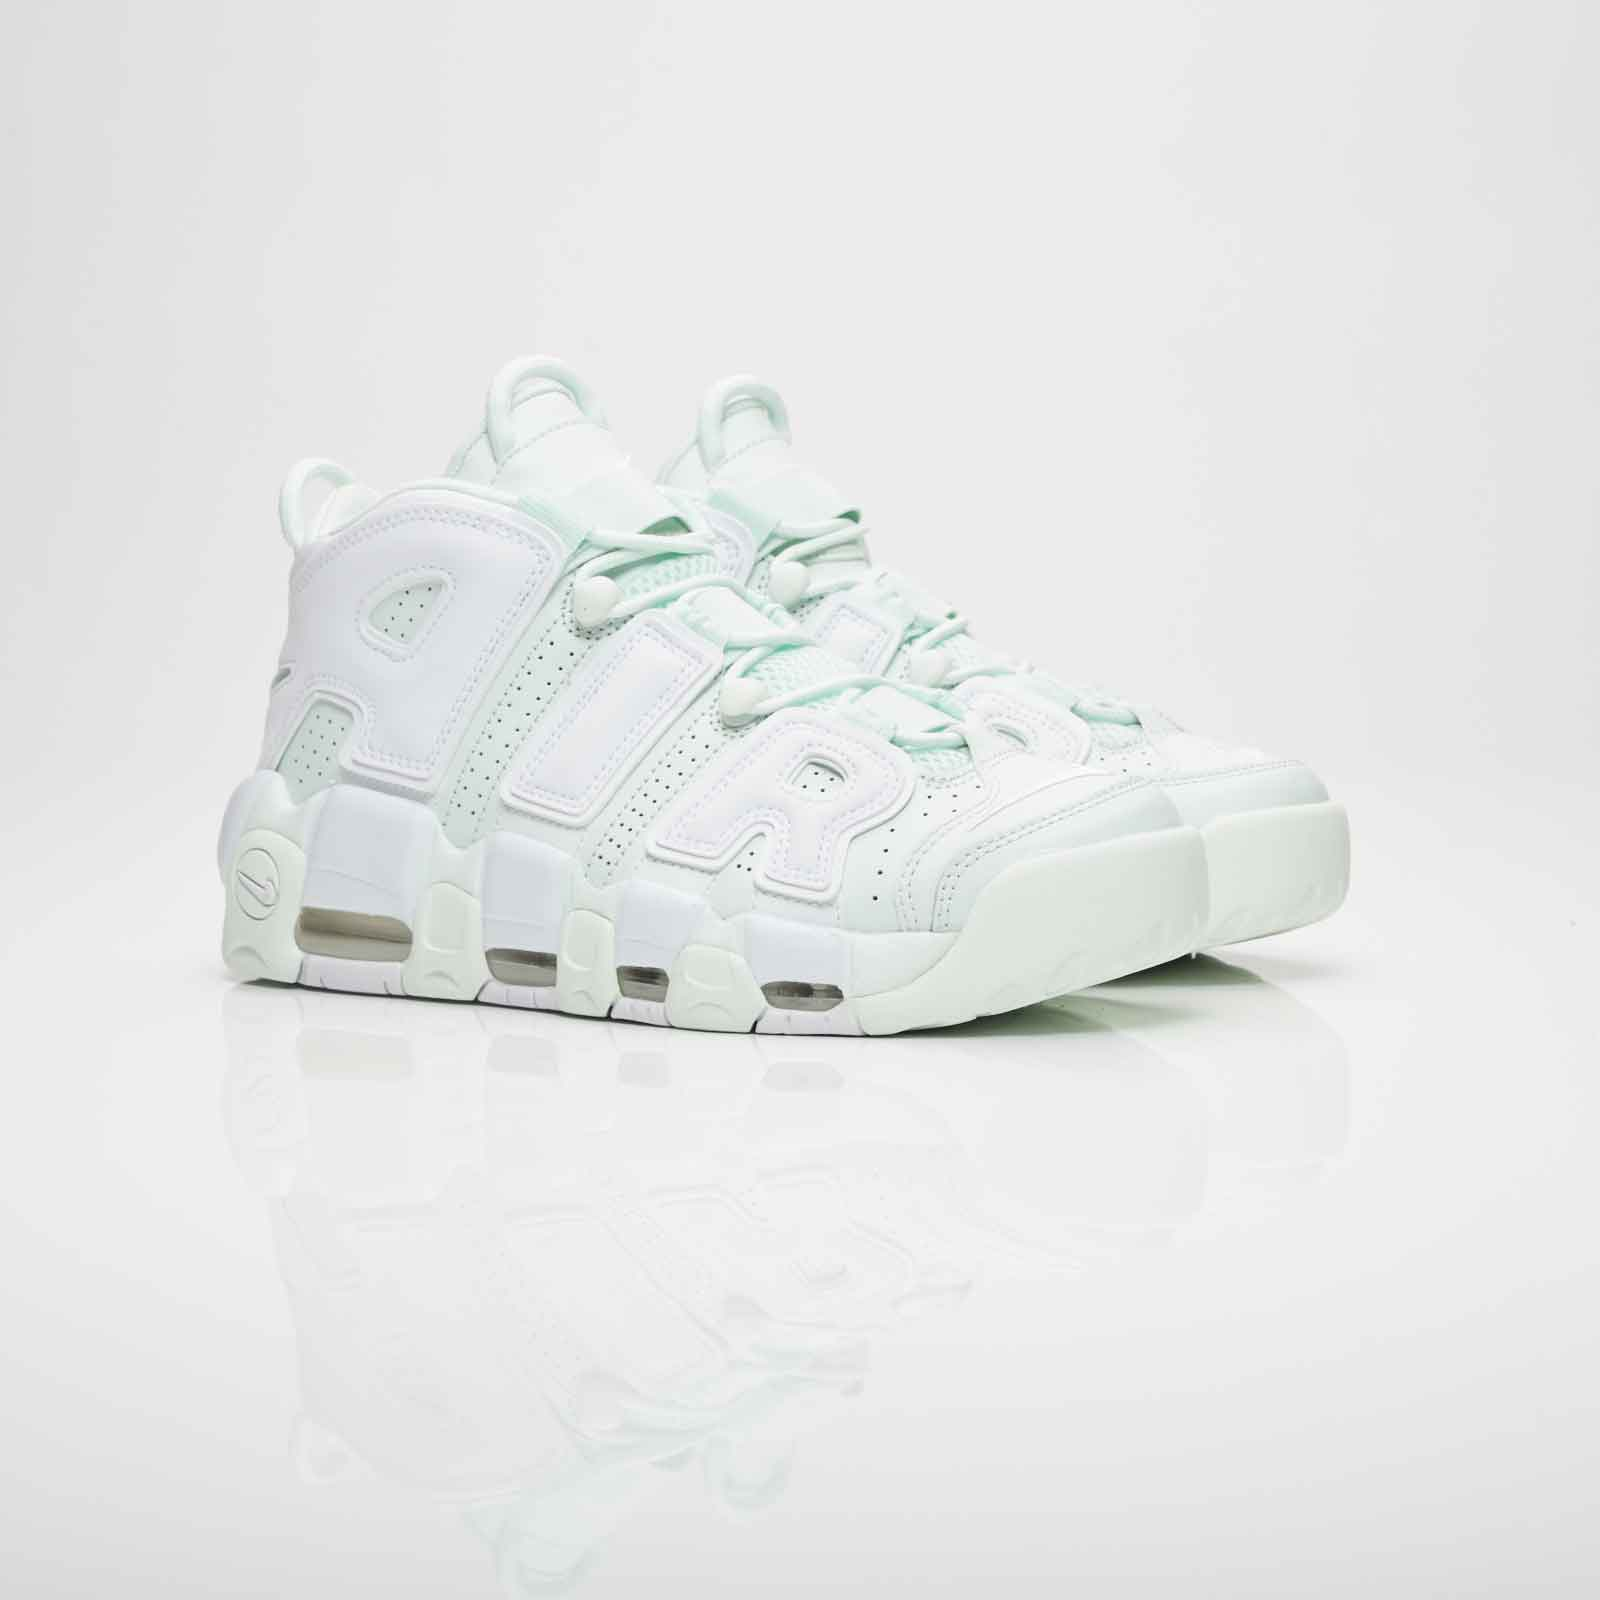 Nike Wmns Air More Uptempo - 917593-300 - Sneakersnstuff  02cb9ba7ac00